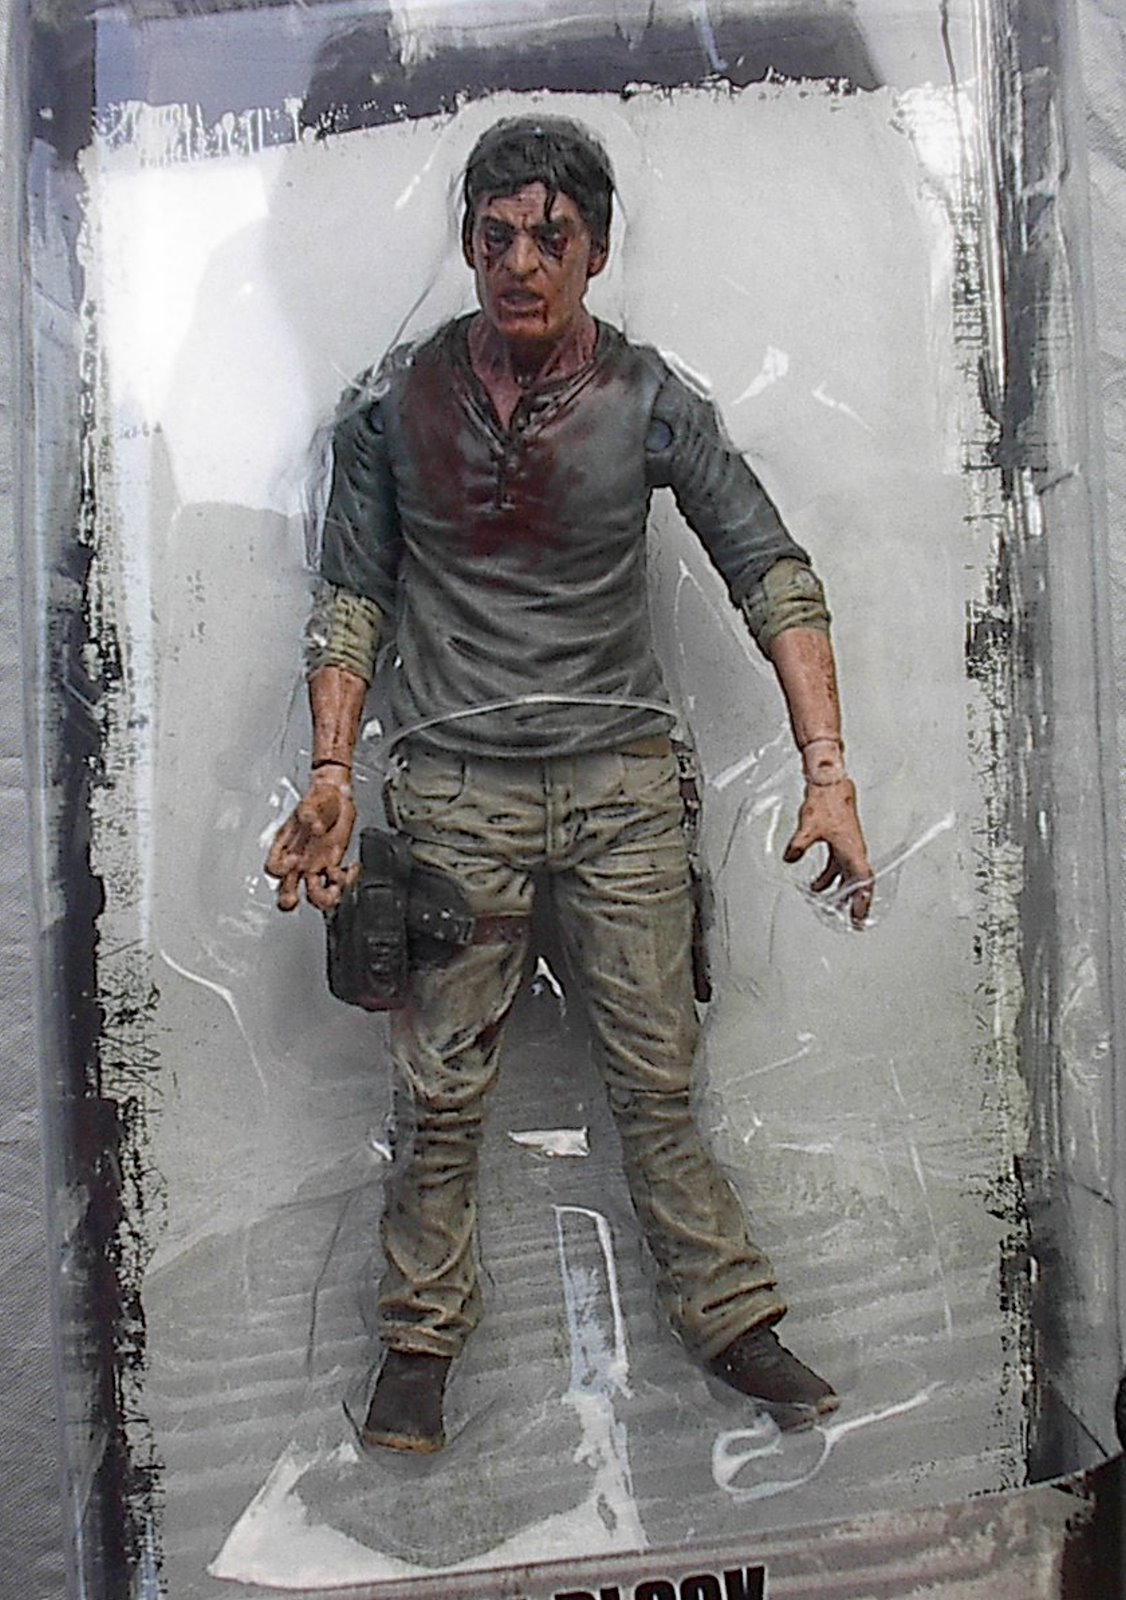 Cell Block Flu Walker TV Series 7.5 The Walking Dead McFarlane figure